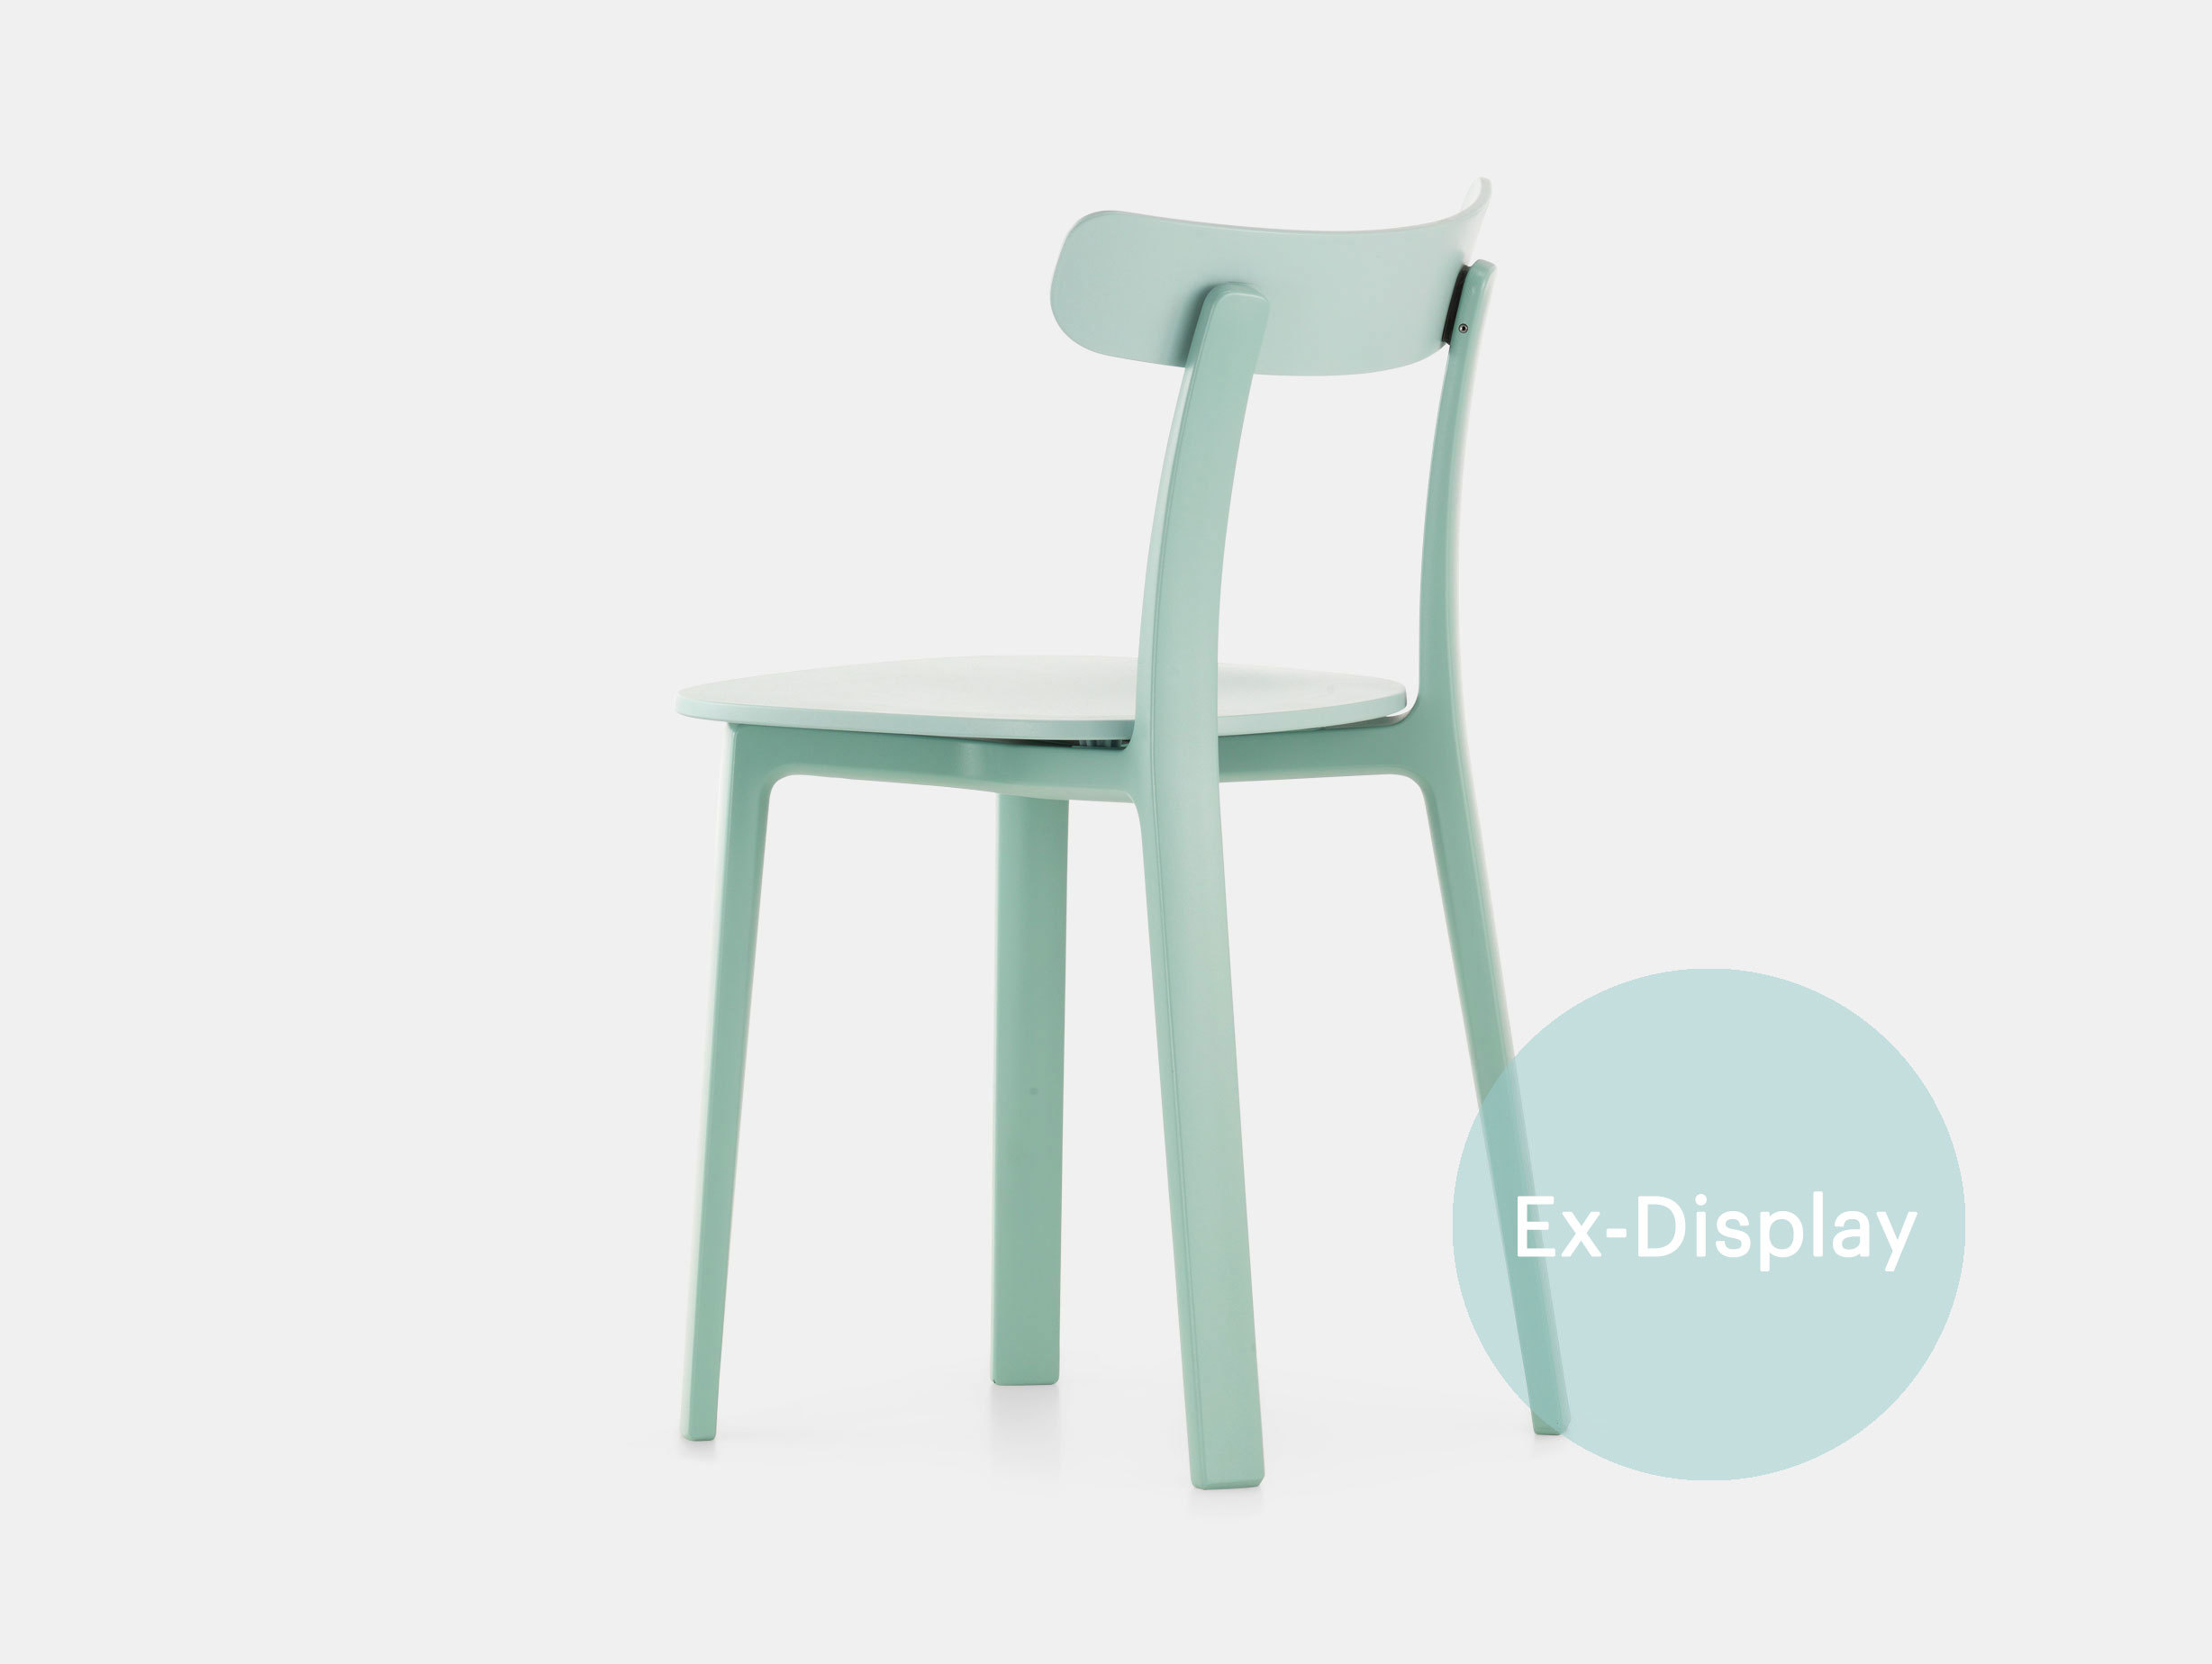 All Plastic Chairs / 30% off in our Summer Sale at £138 each image 1